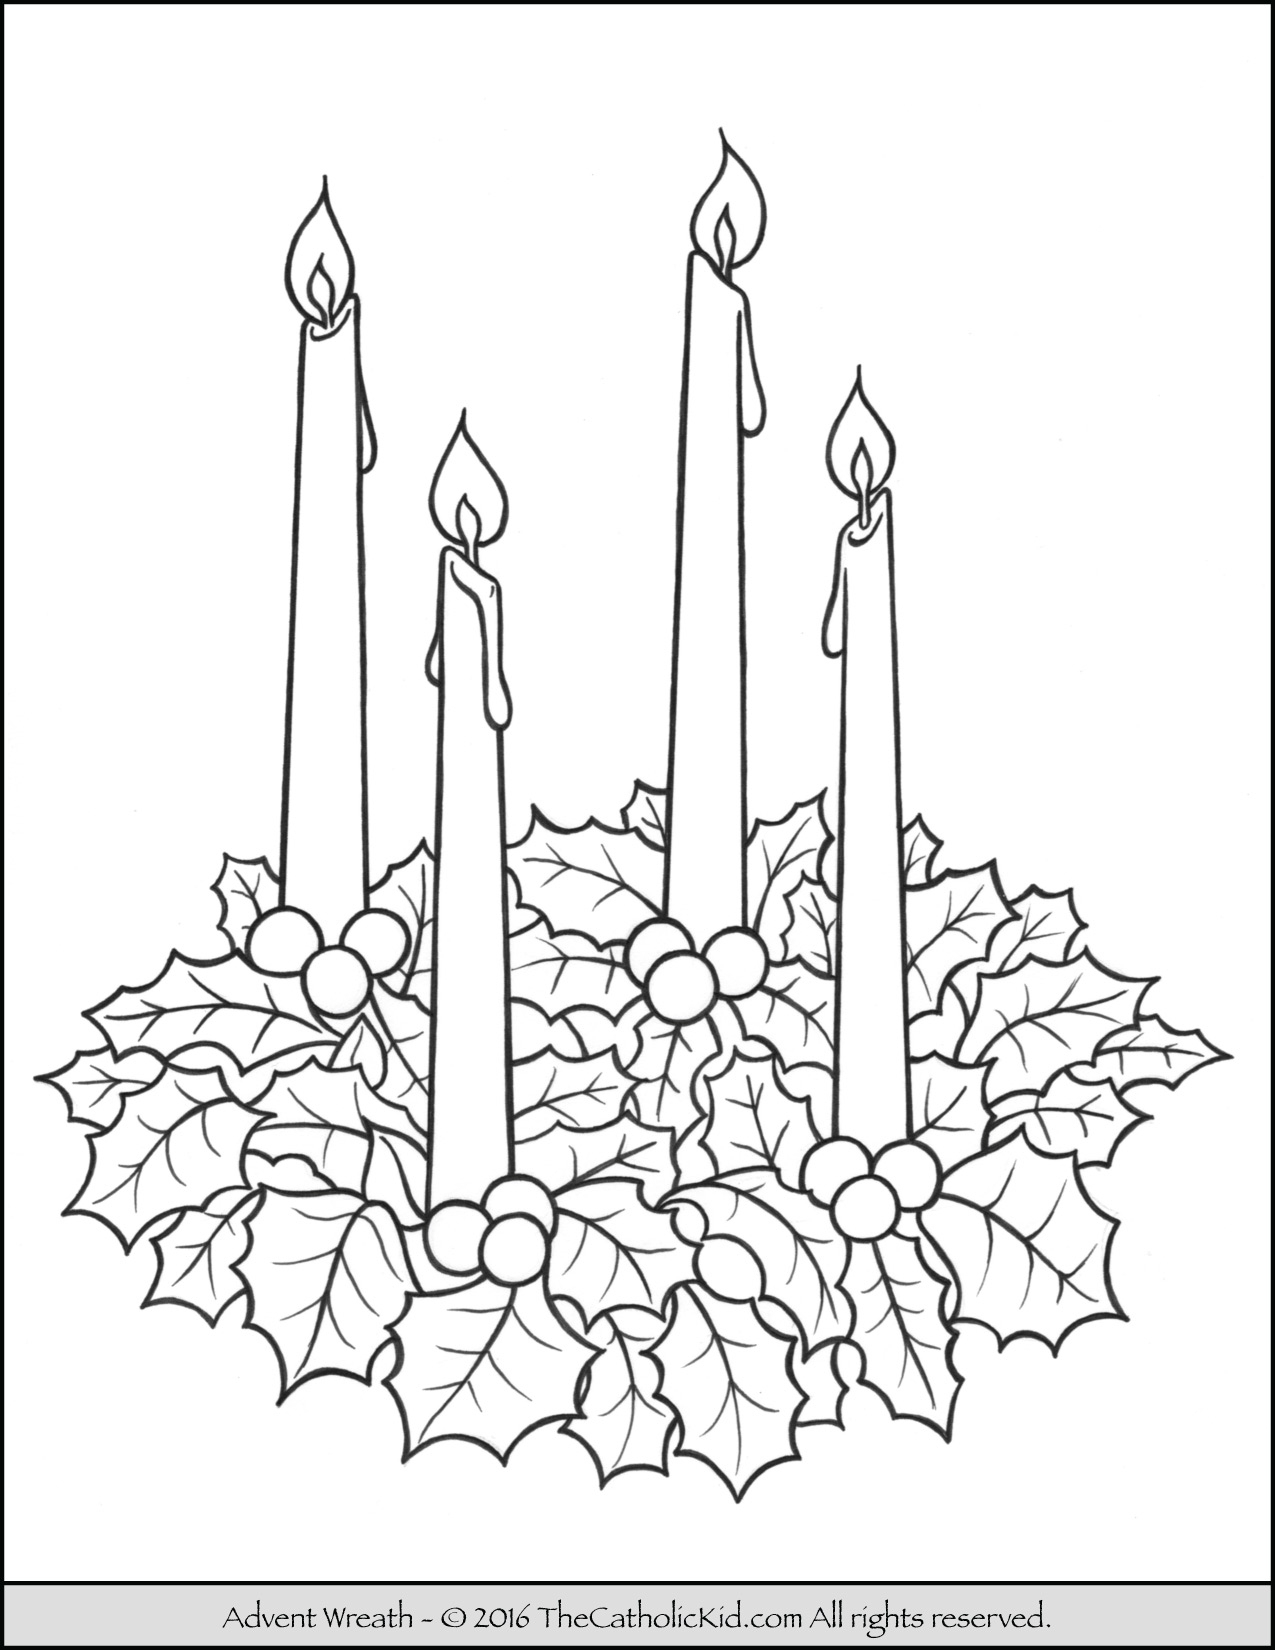 Advent Wreath Coloring Page - - Free Printable Advent Wreath